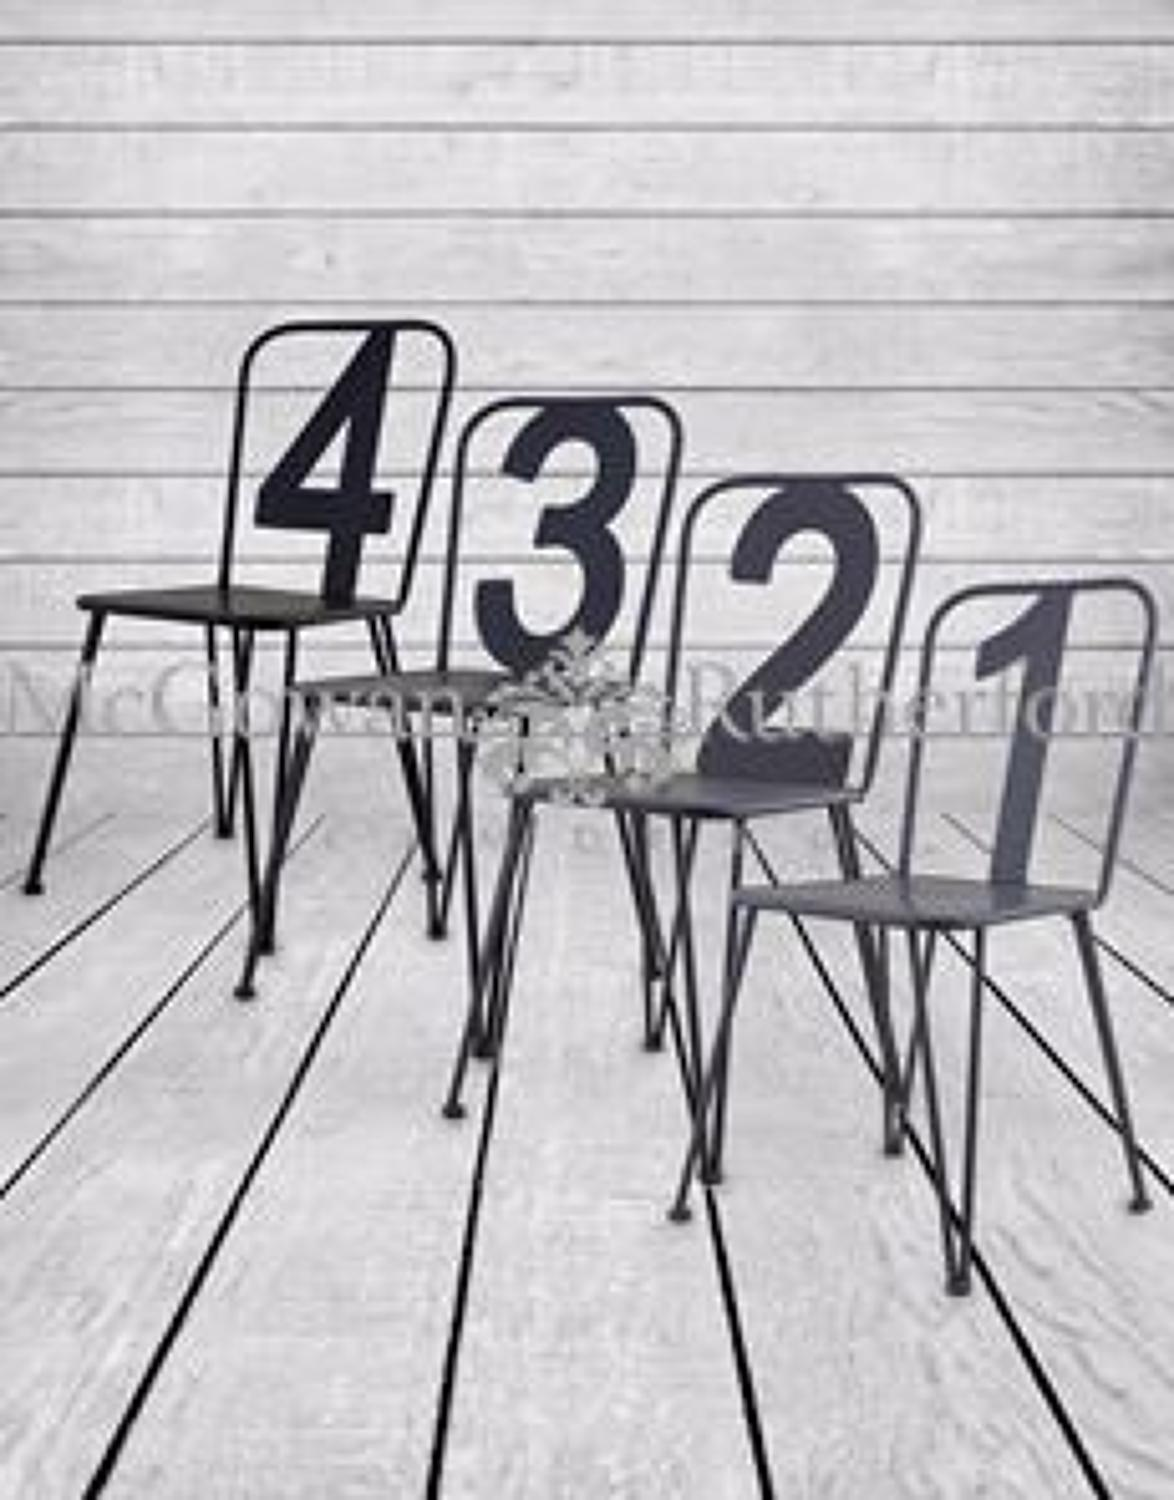 Set of 4 assorted grey numbers metal chairs